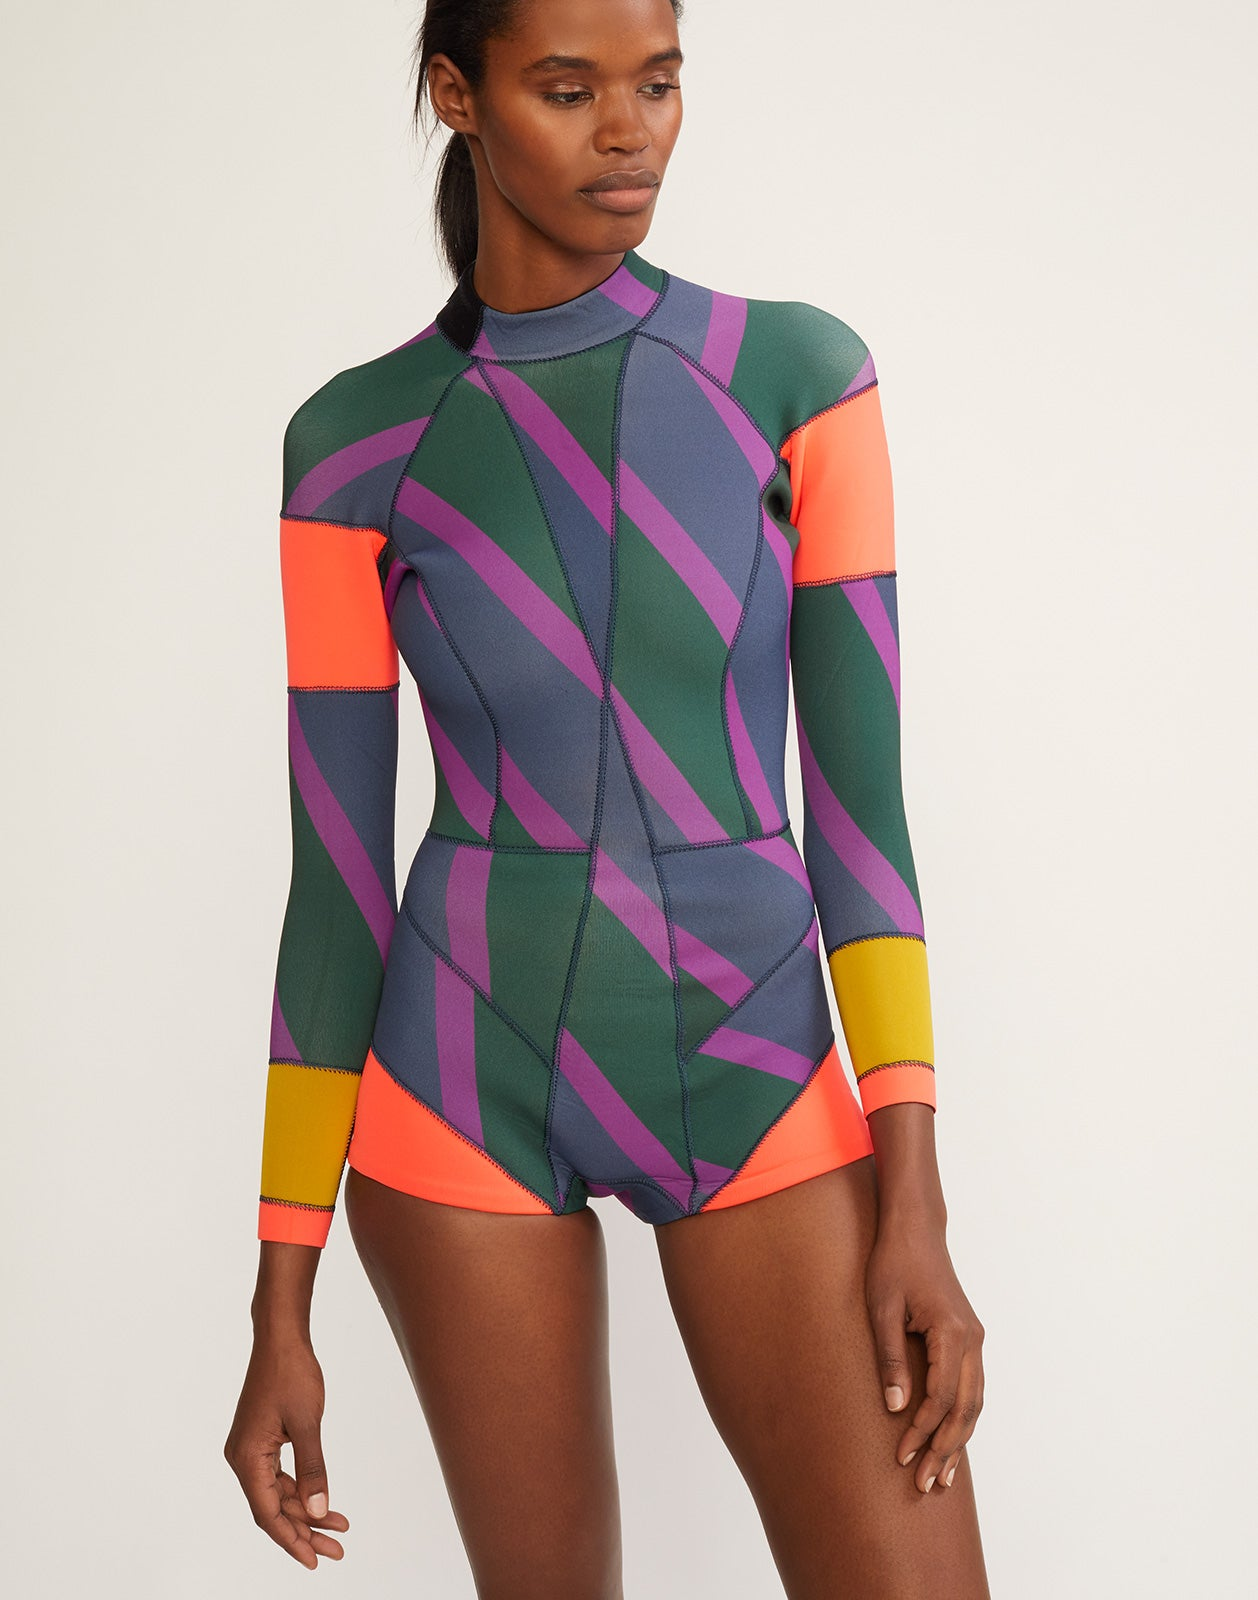 Cropped front view of Zig Zag stripe wetsuit in olive and purple with neon orange colorblock details.